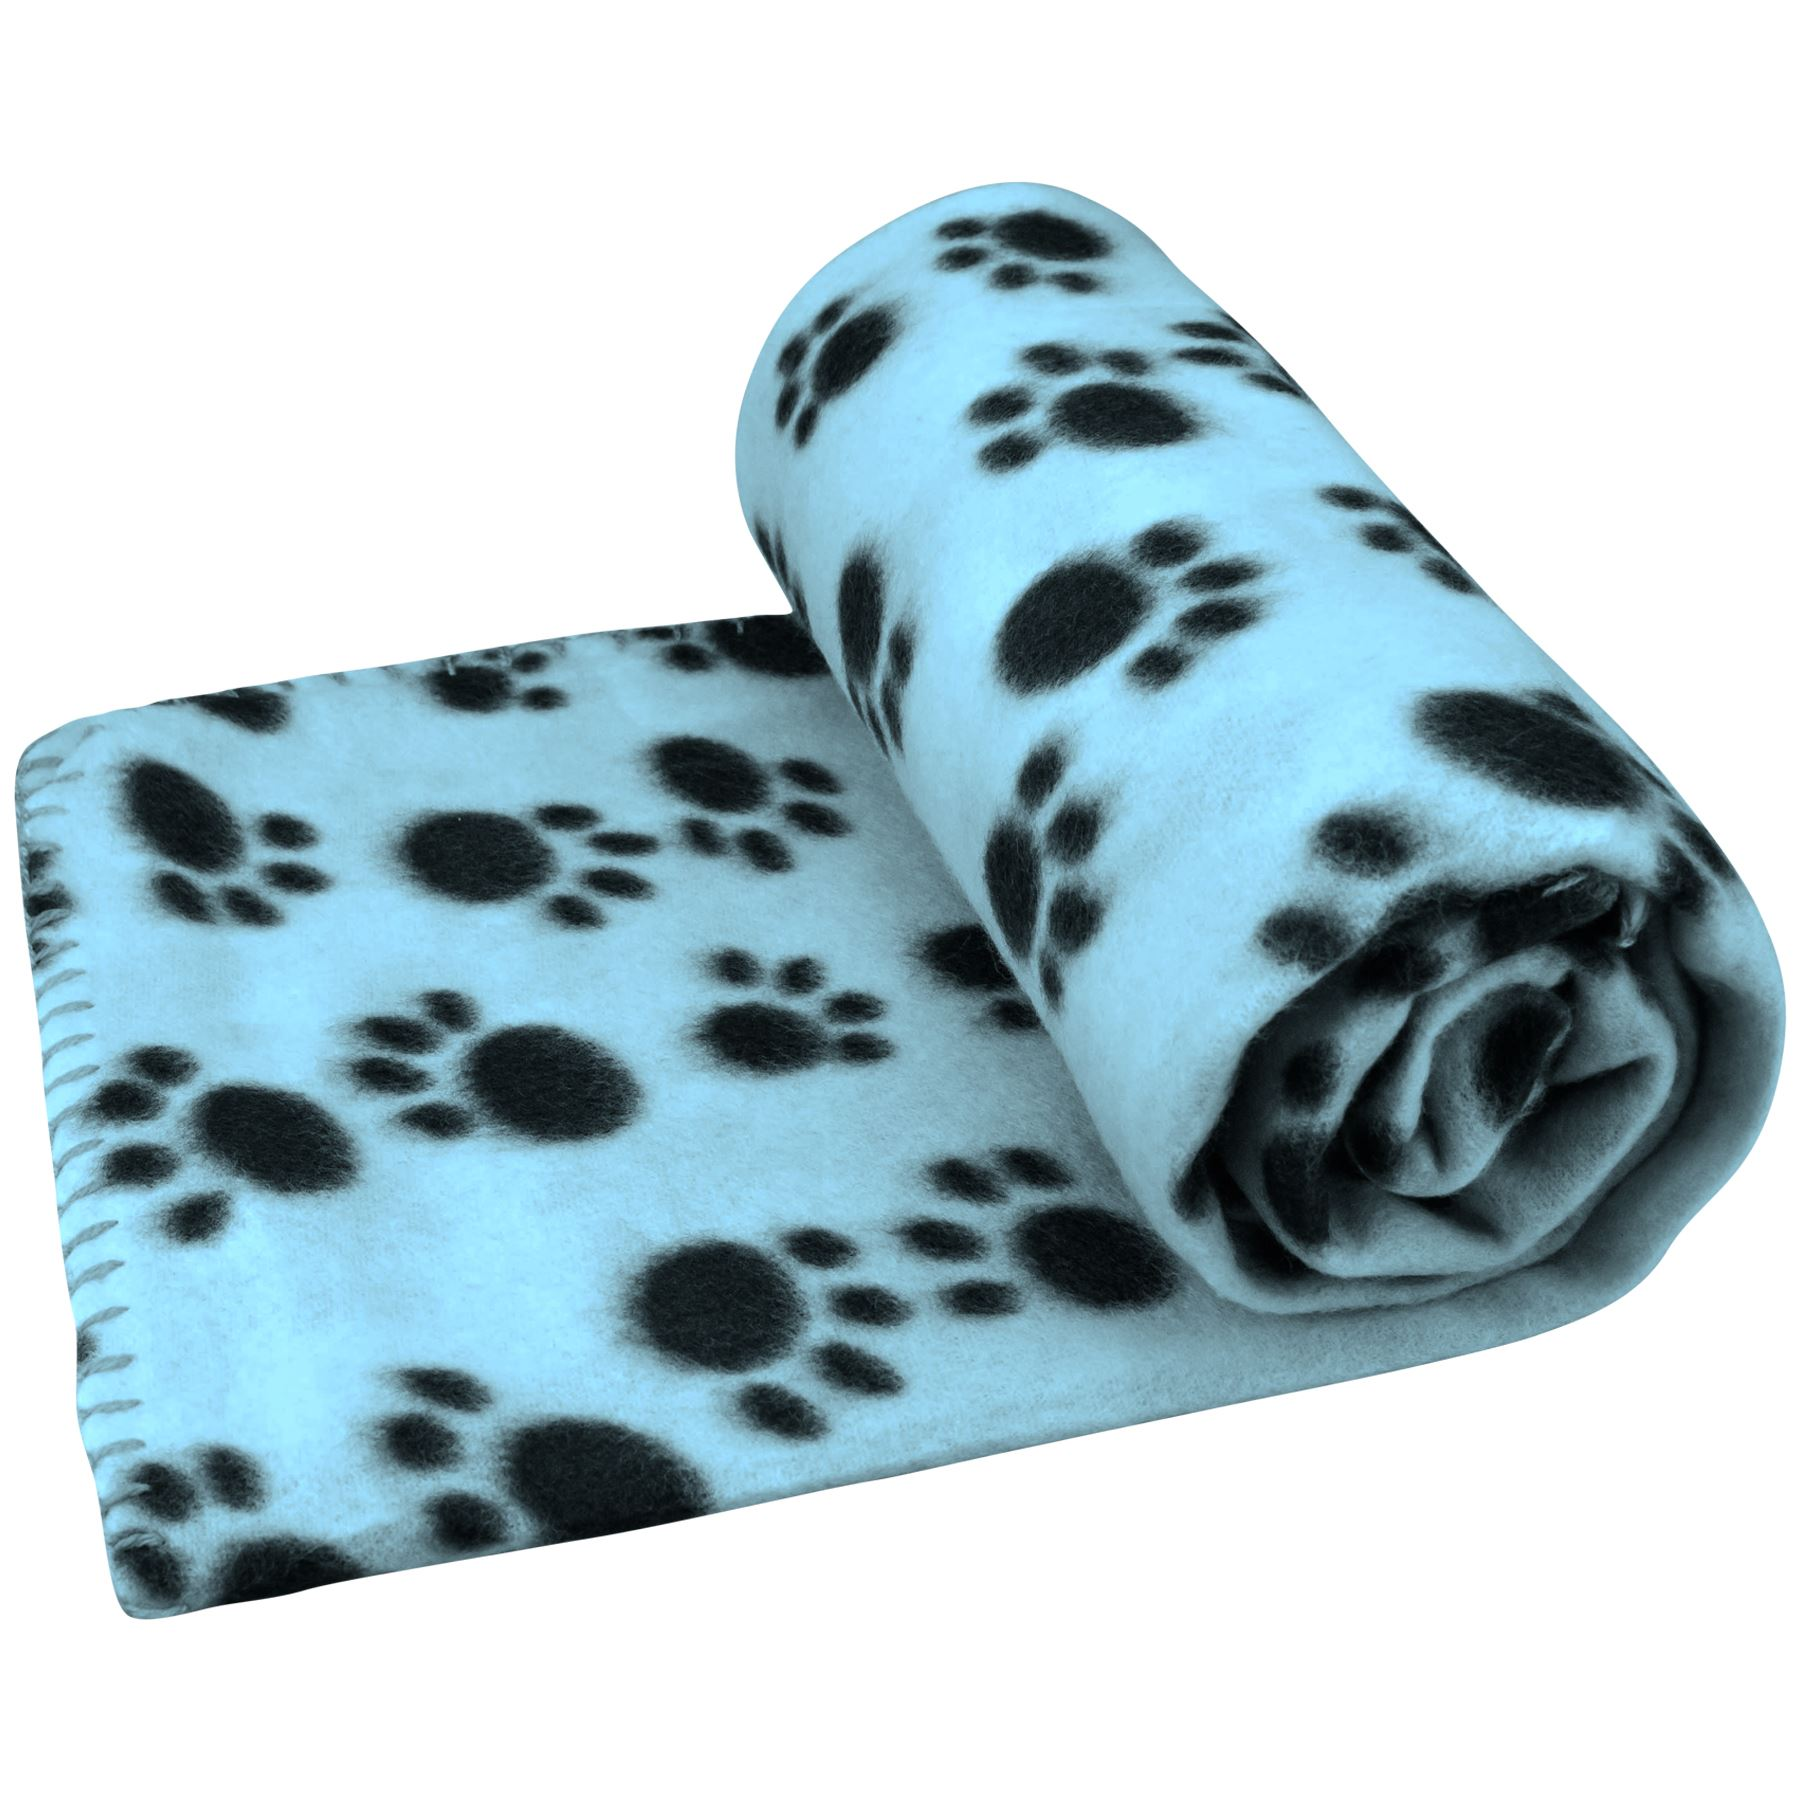 Pet-Blanket-Dogs-amp-Puppy-Cat-Paw-Print-Soft-Warm-Fleece-Bed-Travel-Basket-Car thumbnail 16